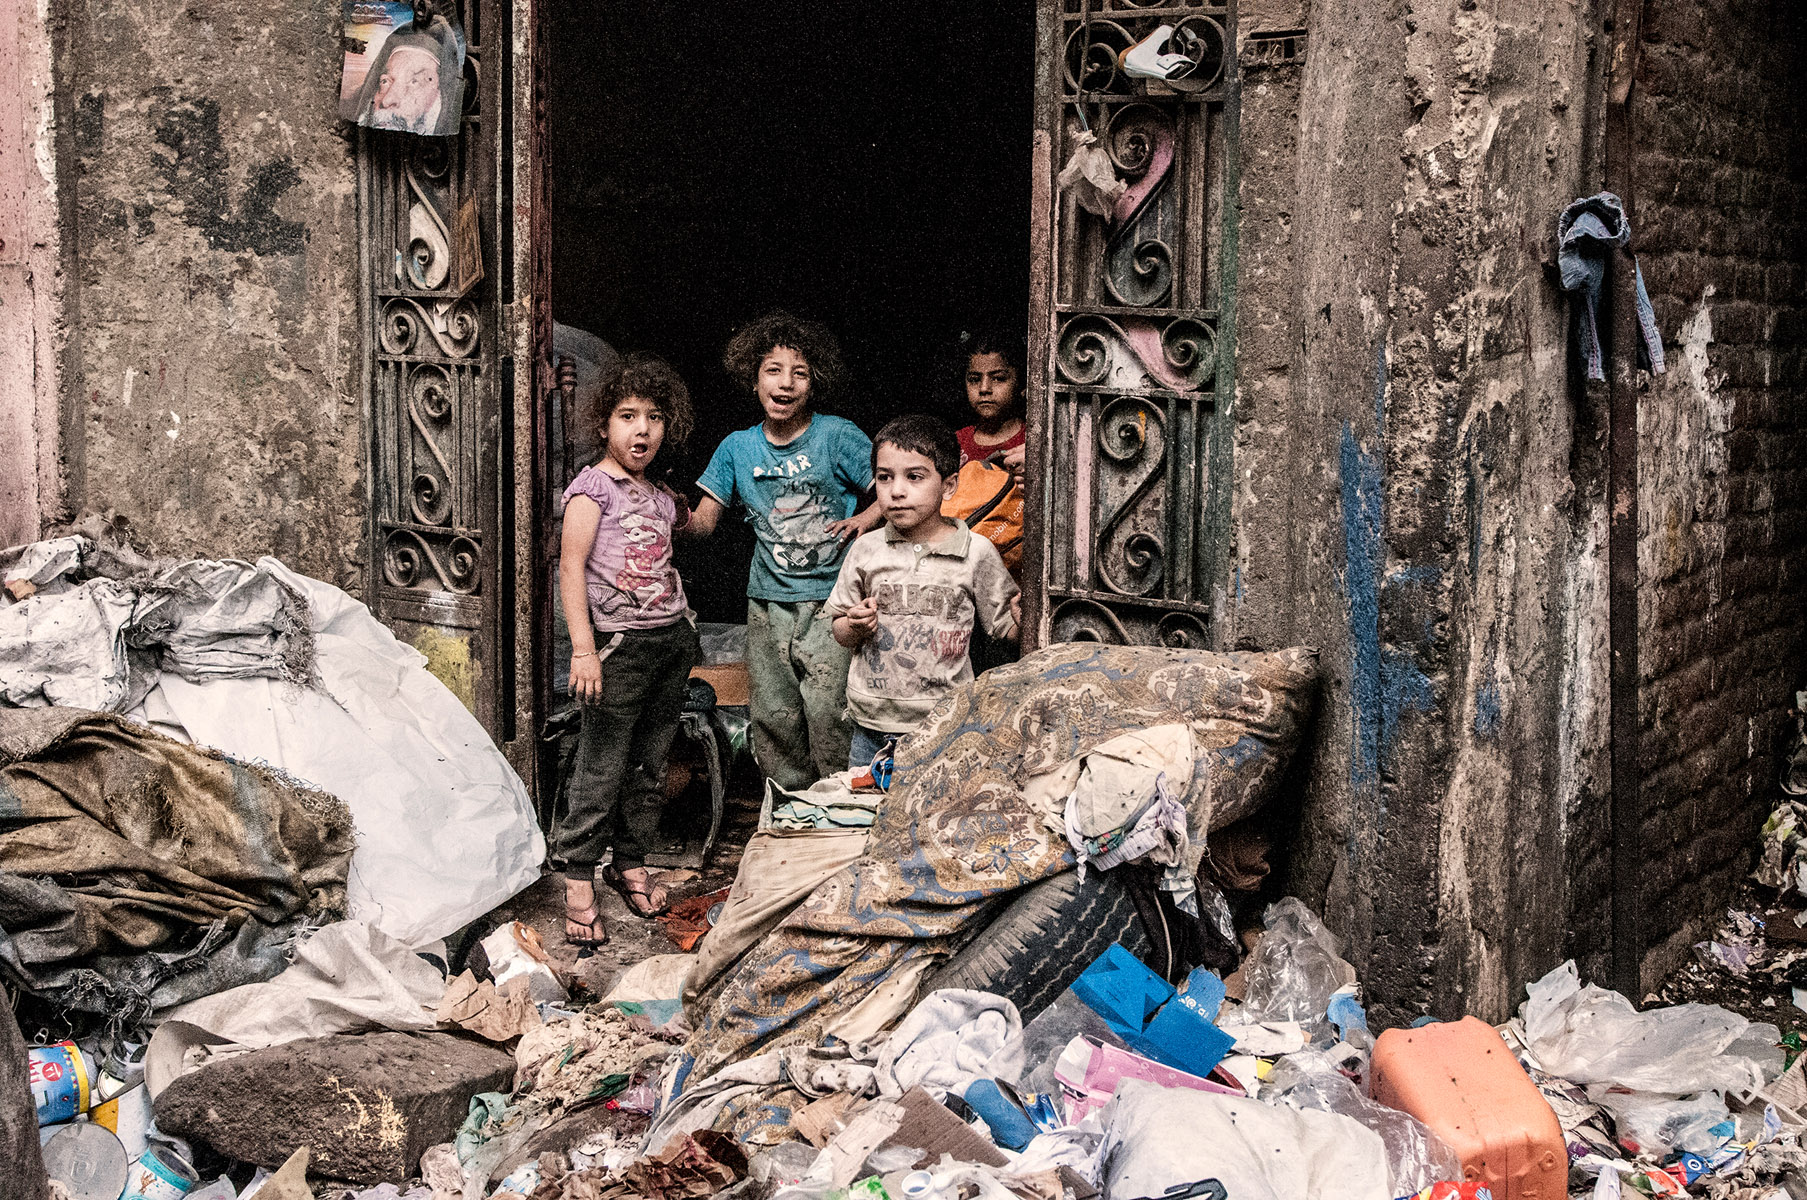 Francesca Remorini, Garbage City, Syngenta Photo Award